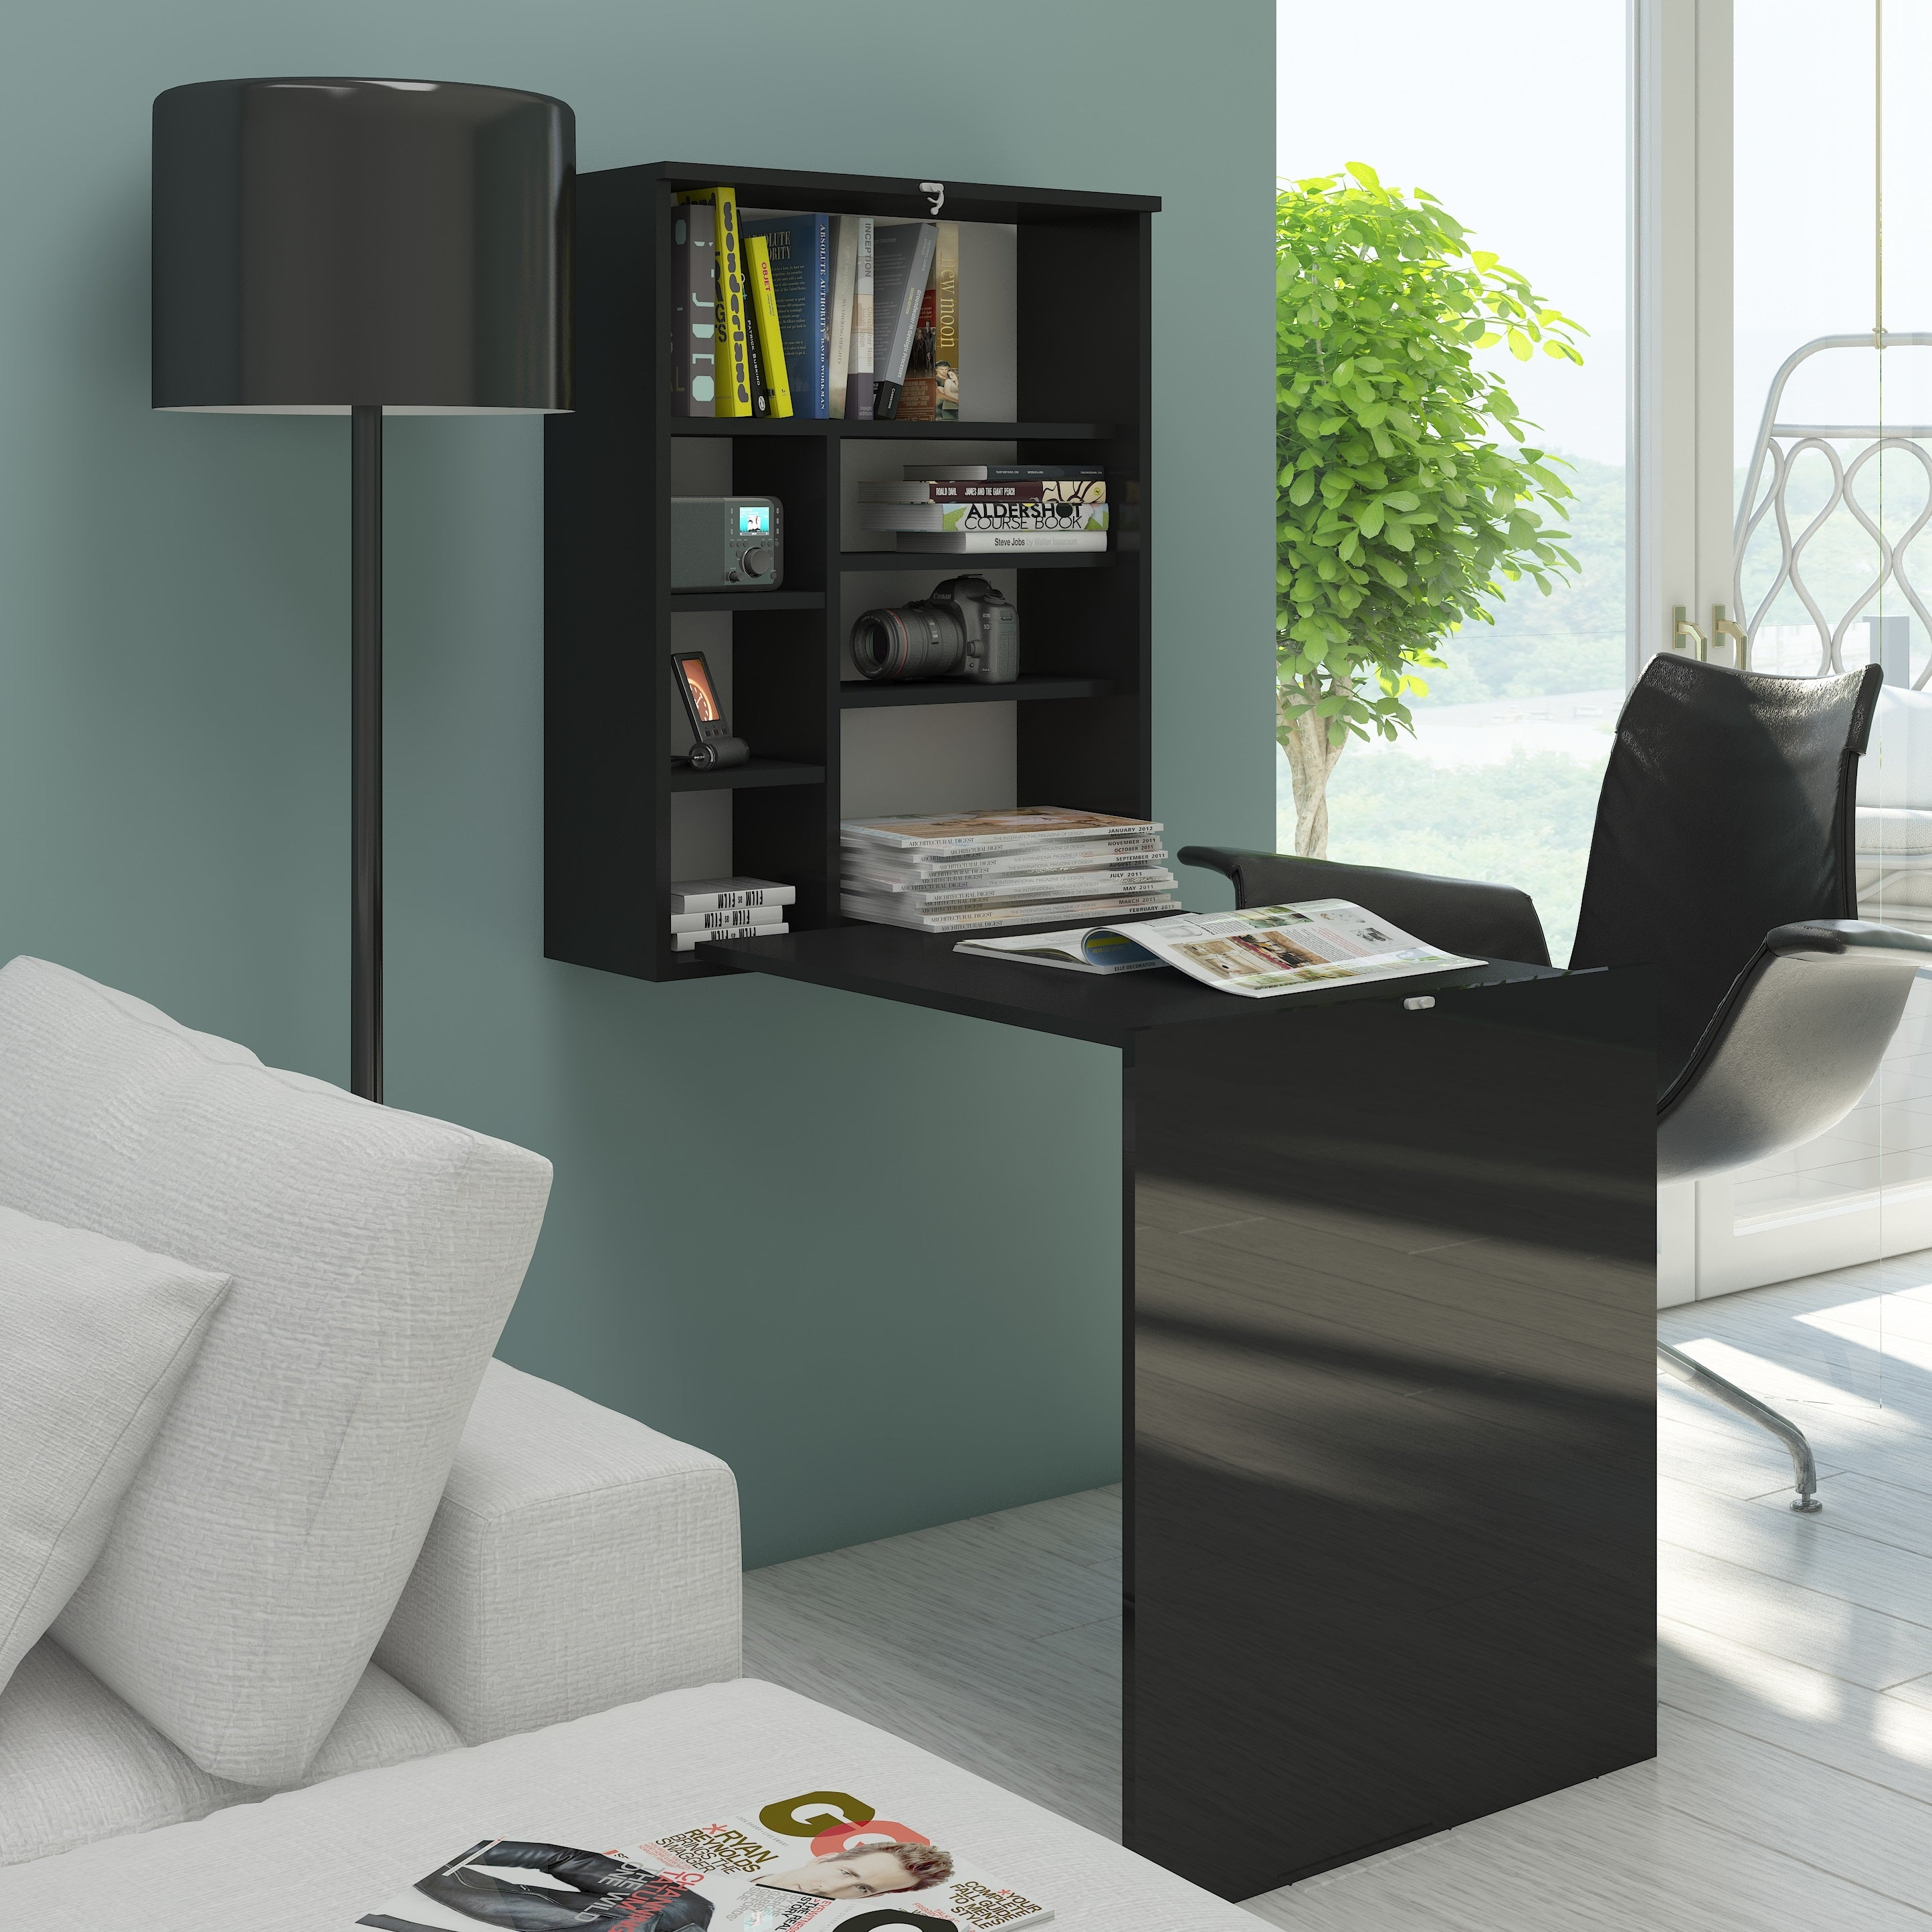 Hide Fold Out Wall Mount Desk with Hutch